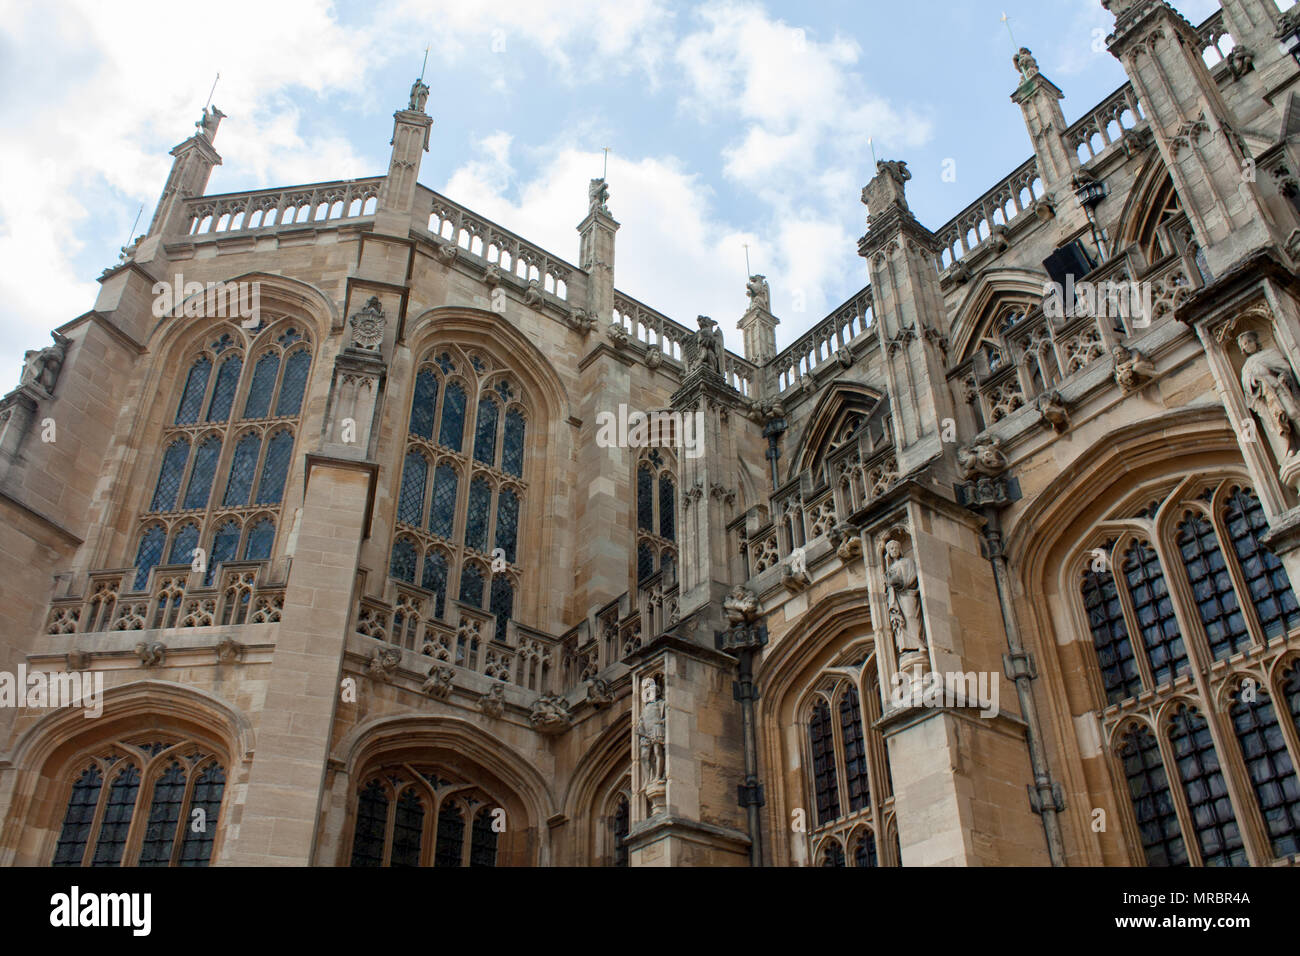 St George's Chapel in Windsor castle, residence of the british royal family in England, UK. - Stock Image